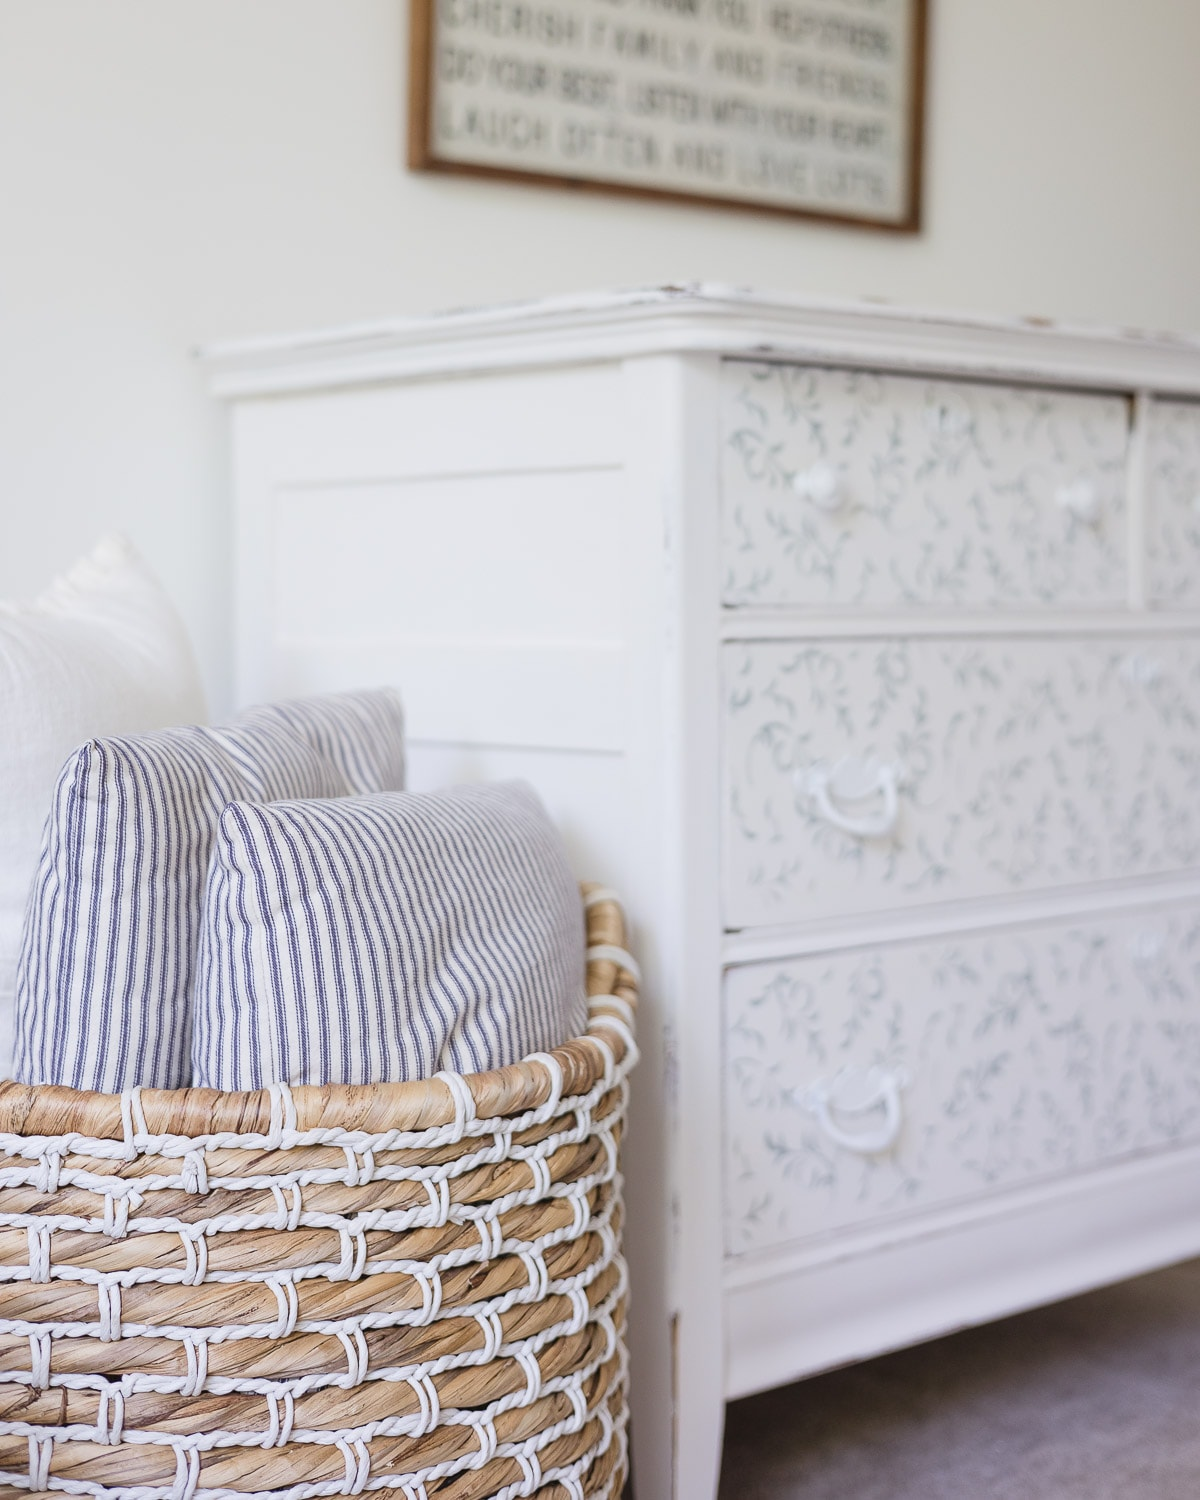 A woven basket with ticking pillows and a painted dresser in the background.